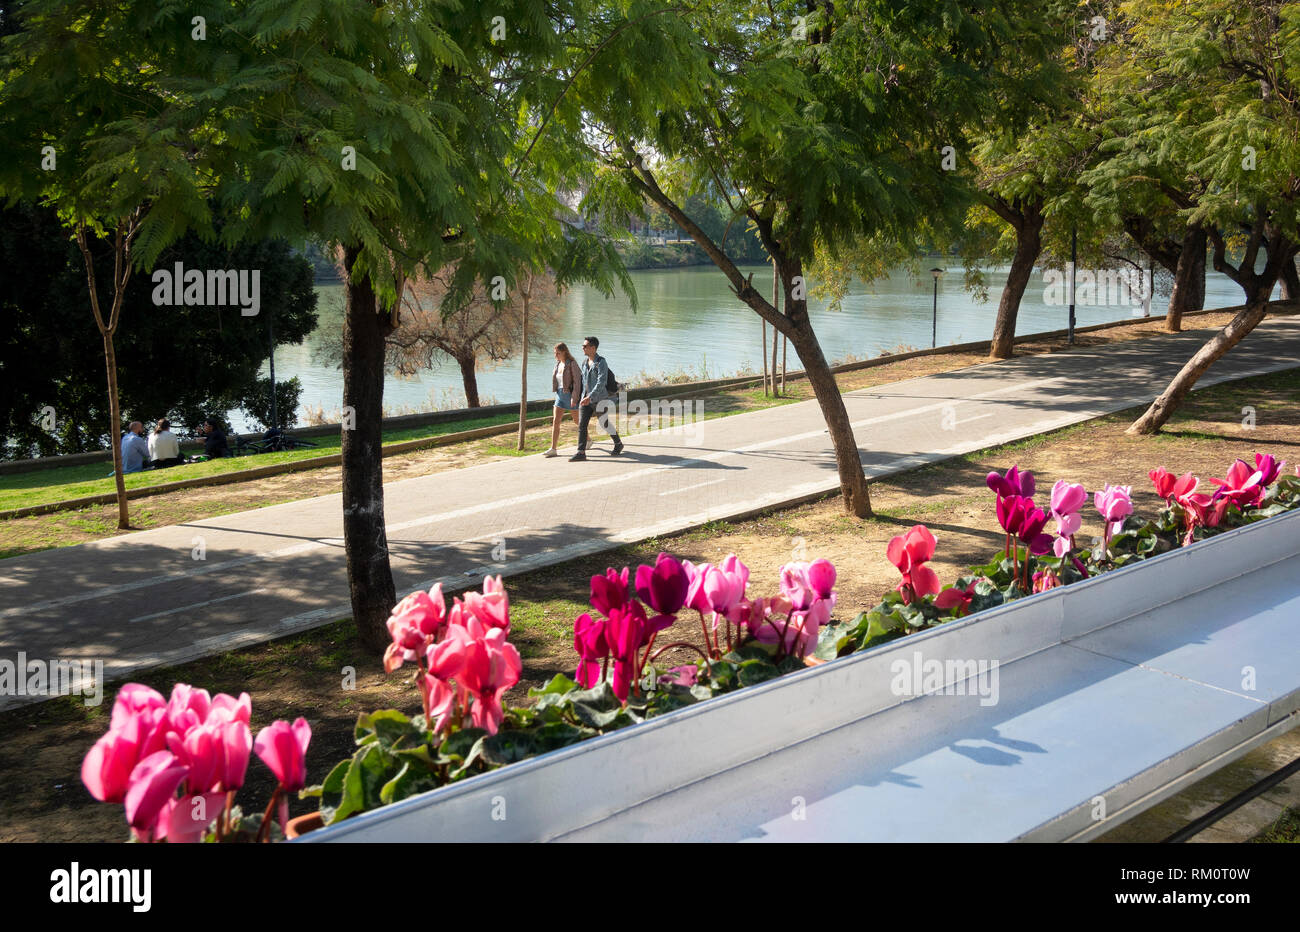 A young couple walking beside the Guadalquivir river on a warm February day in Seville, Spain - Stock Image